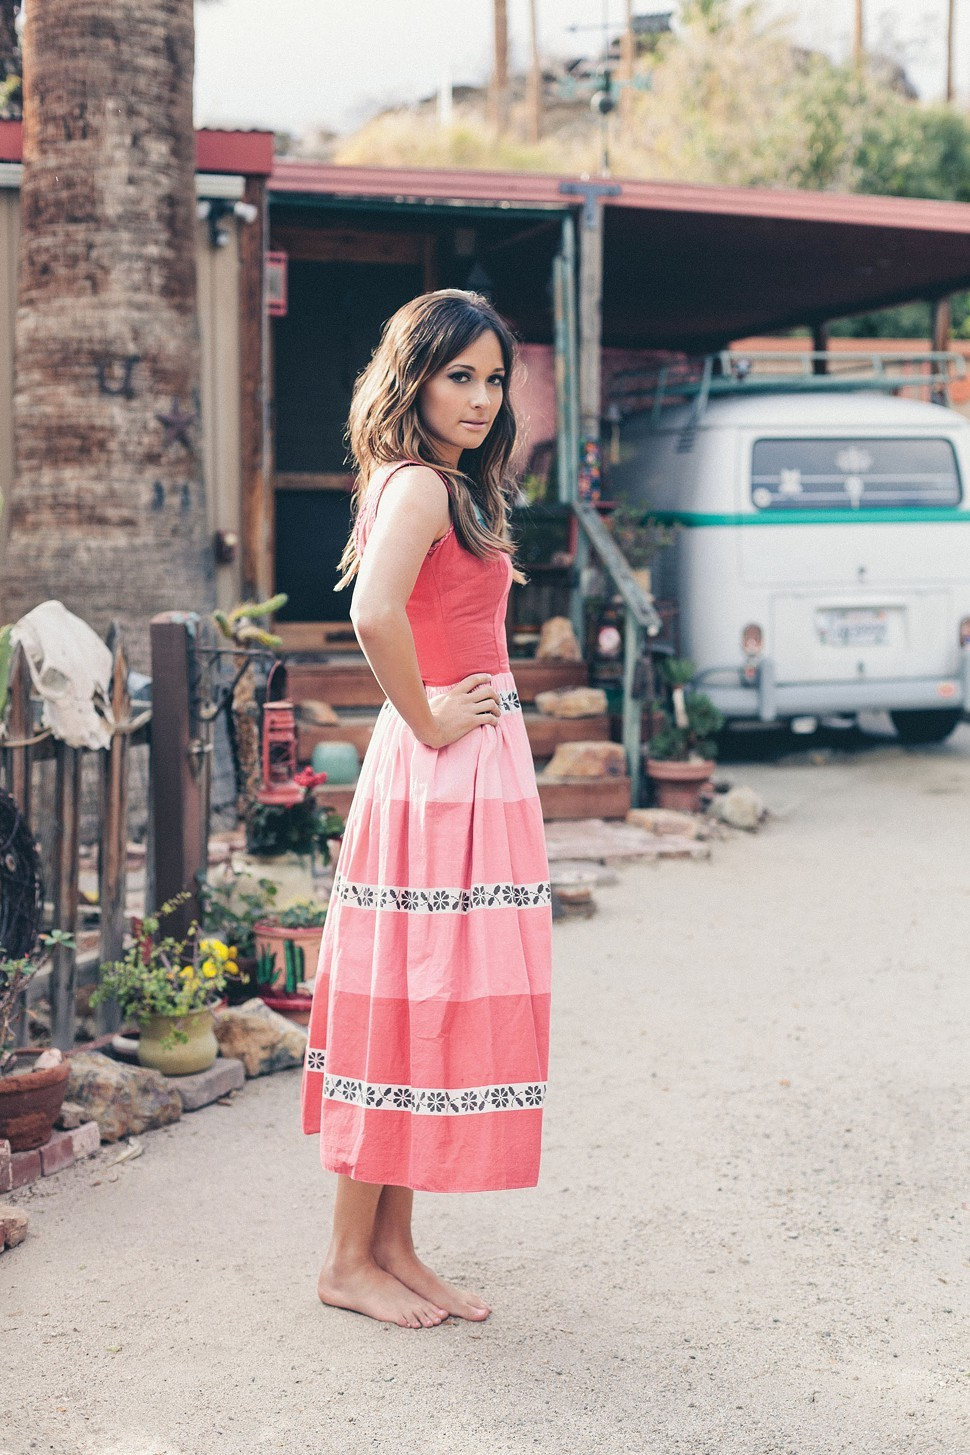 Feisty Nashville Singer Kacey Musgraves Tweaks Conventions From Within furthermore Attractions G60898 Activities Atlanta Georgia also Trip To Belgium Italy 2011 moreover Rss also Surplus. on romantic times convention